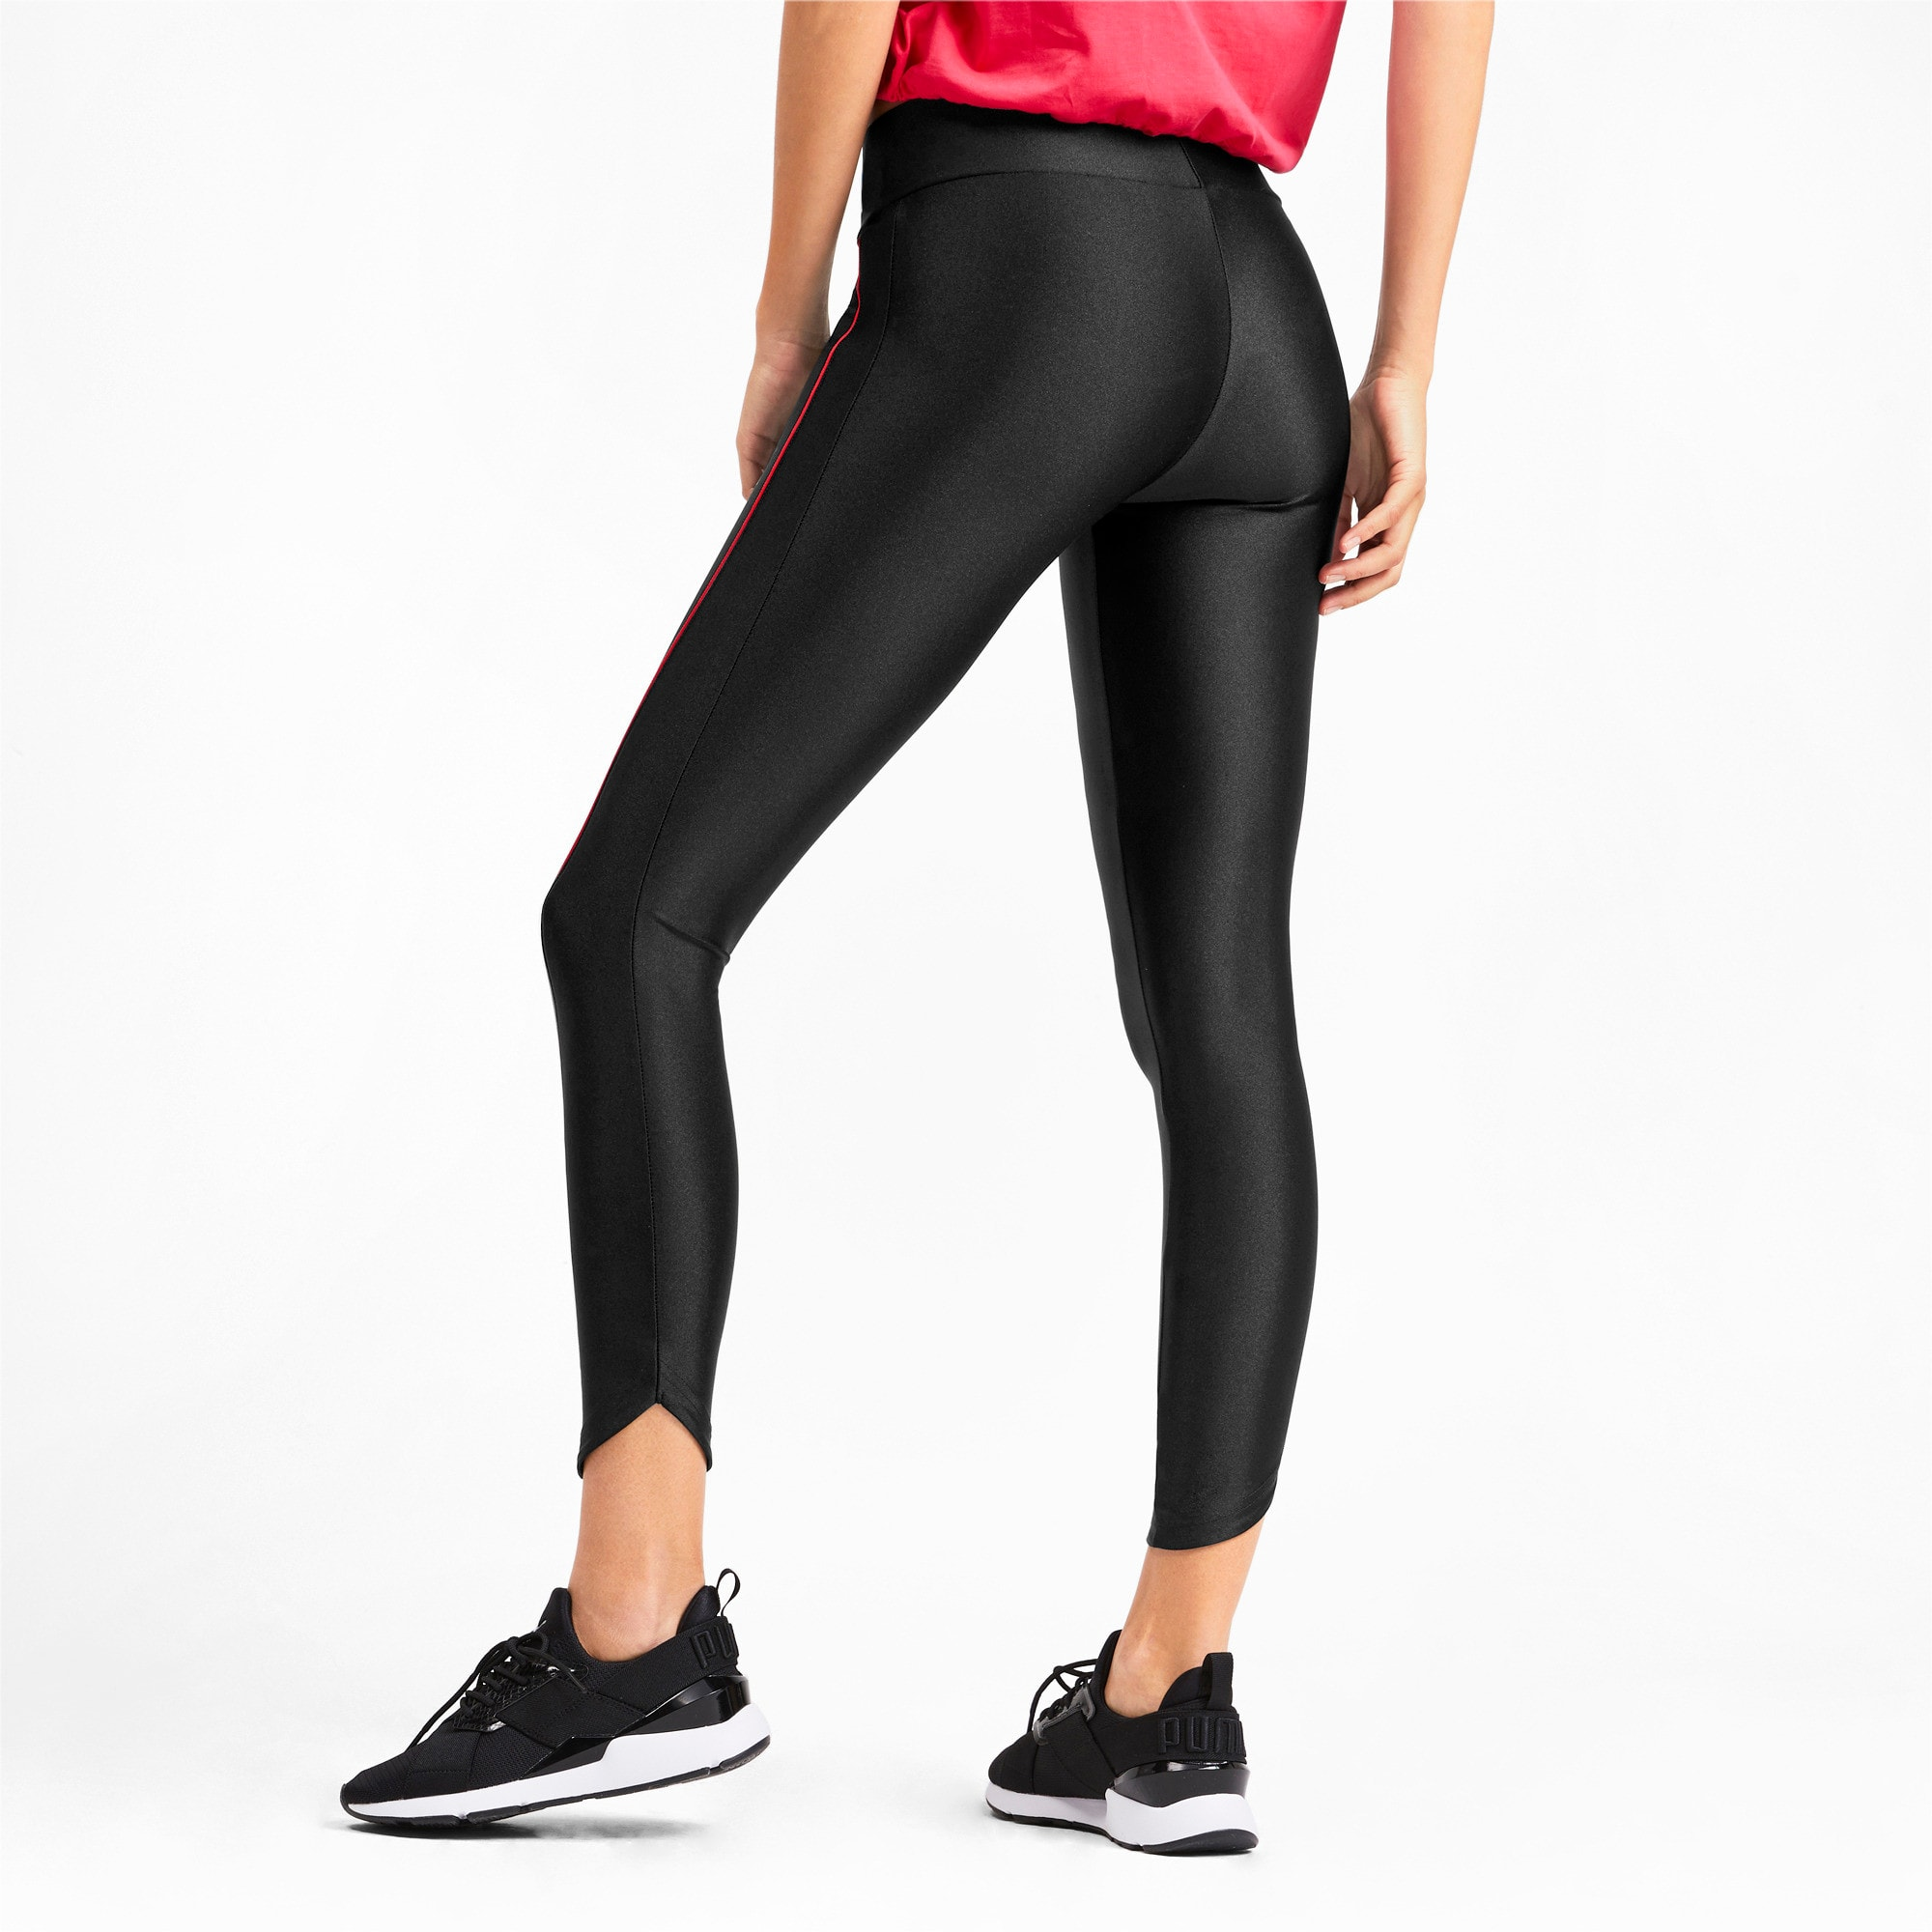 Thumbnail 3 of Chase Graphic 7/8 Women's Leggings, Puma Black, medium